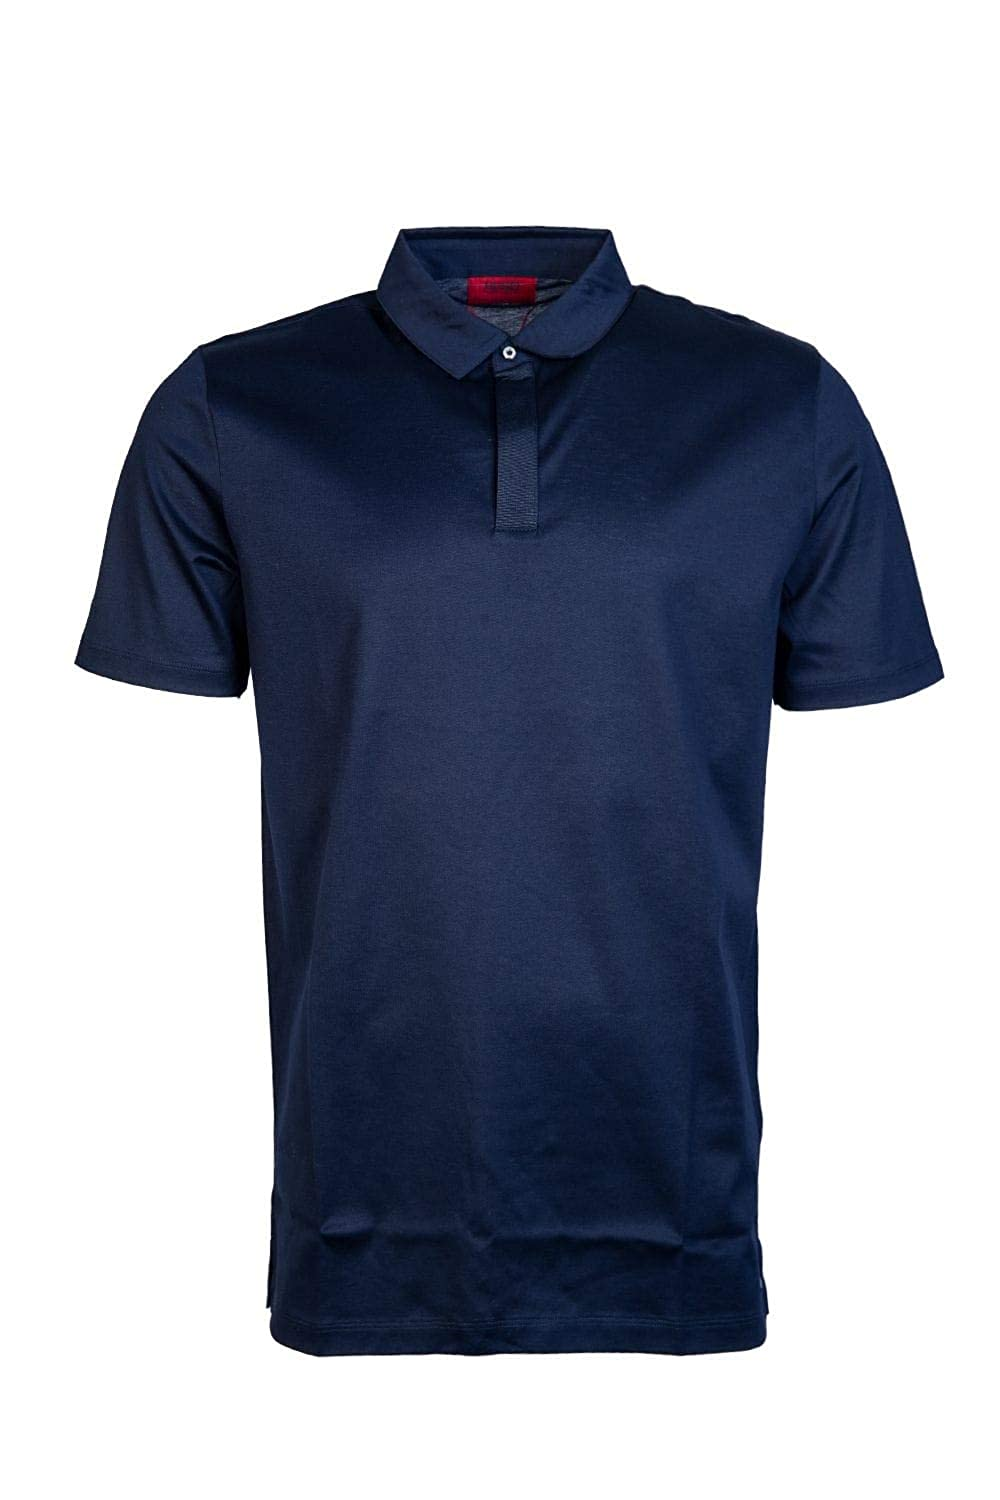 09a41ef66 Amazon.com  Hugo Boss Red Dajm Slim Fit Mercerised Cotton Navy Polo XL  Navy  HUGO BOSS  Clothing